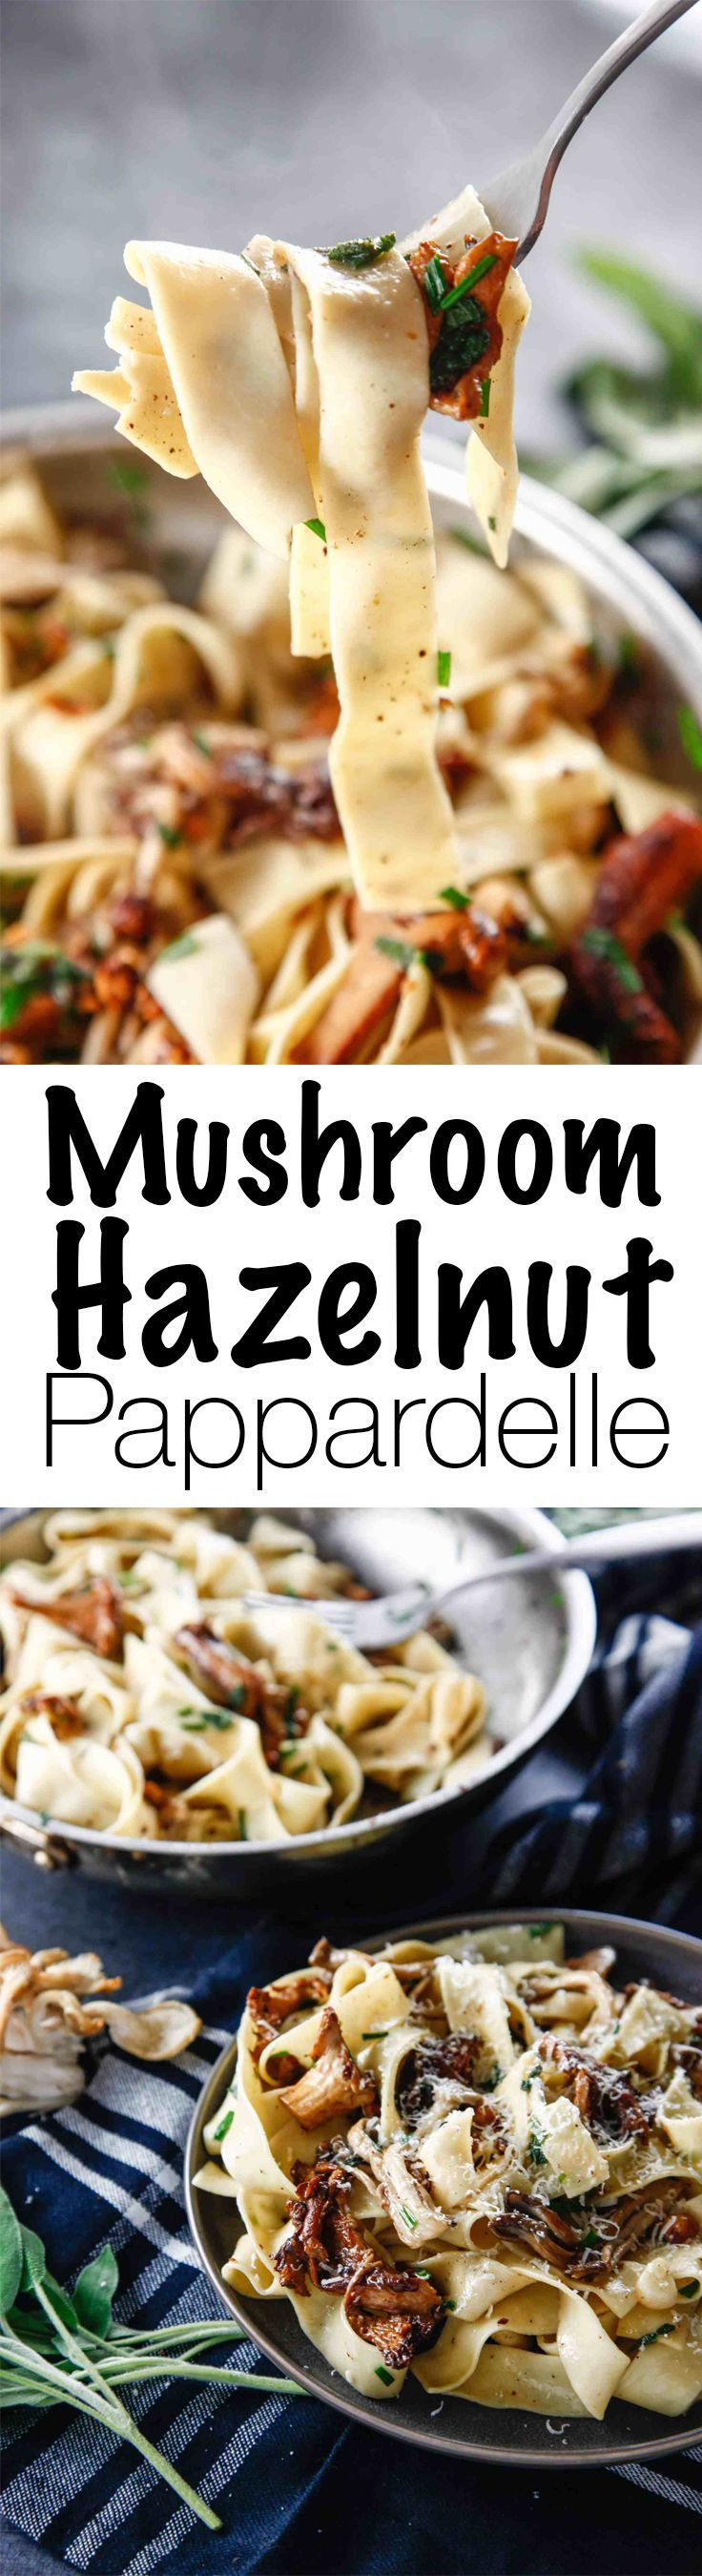 In search of a quick and easy vegetarian dish? This recipe for Mushroom Hazelnut Pappardelle is simplistic and classic, something that will impress your vegetarian friends to no end! Enjoy this earthy flavored pasta! via @thebrooklyncook